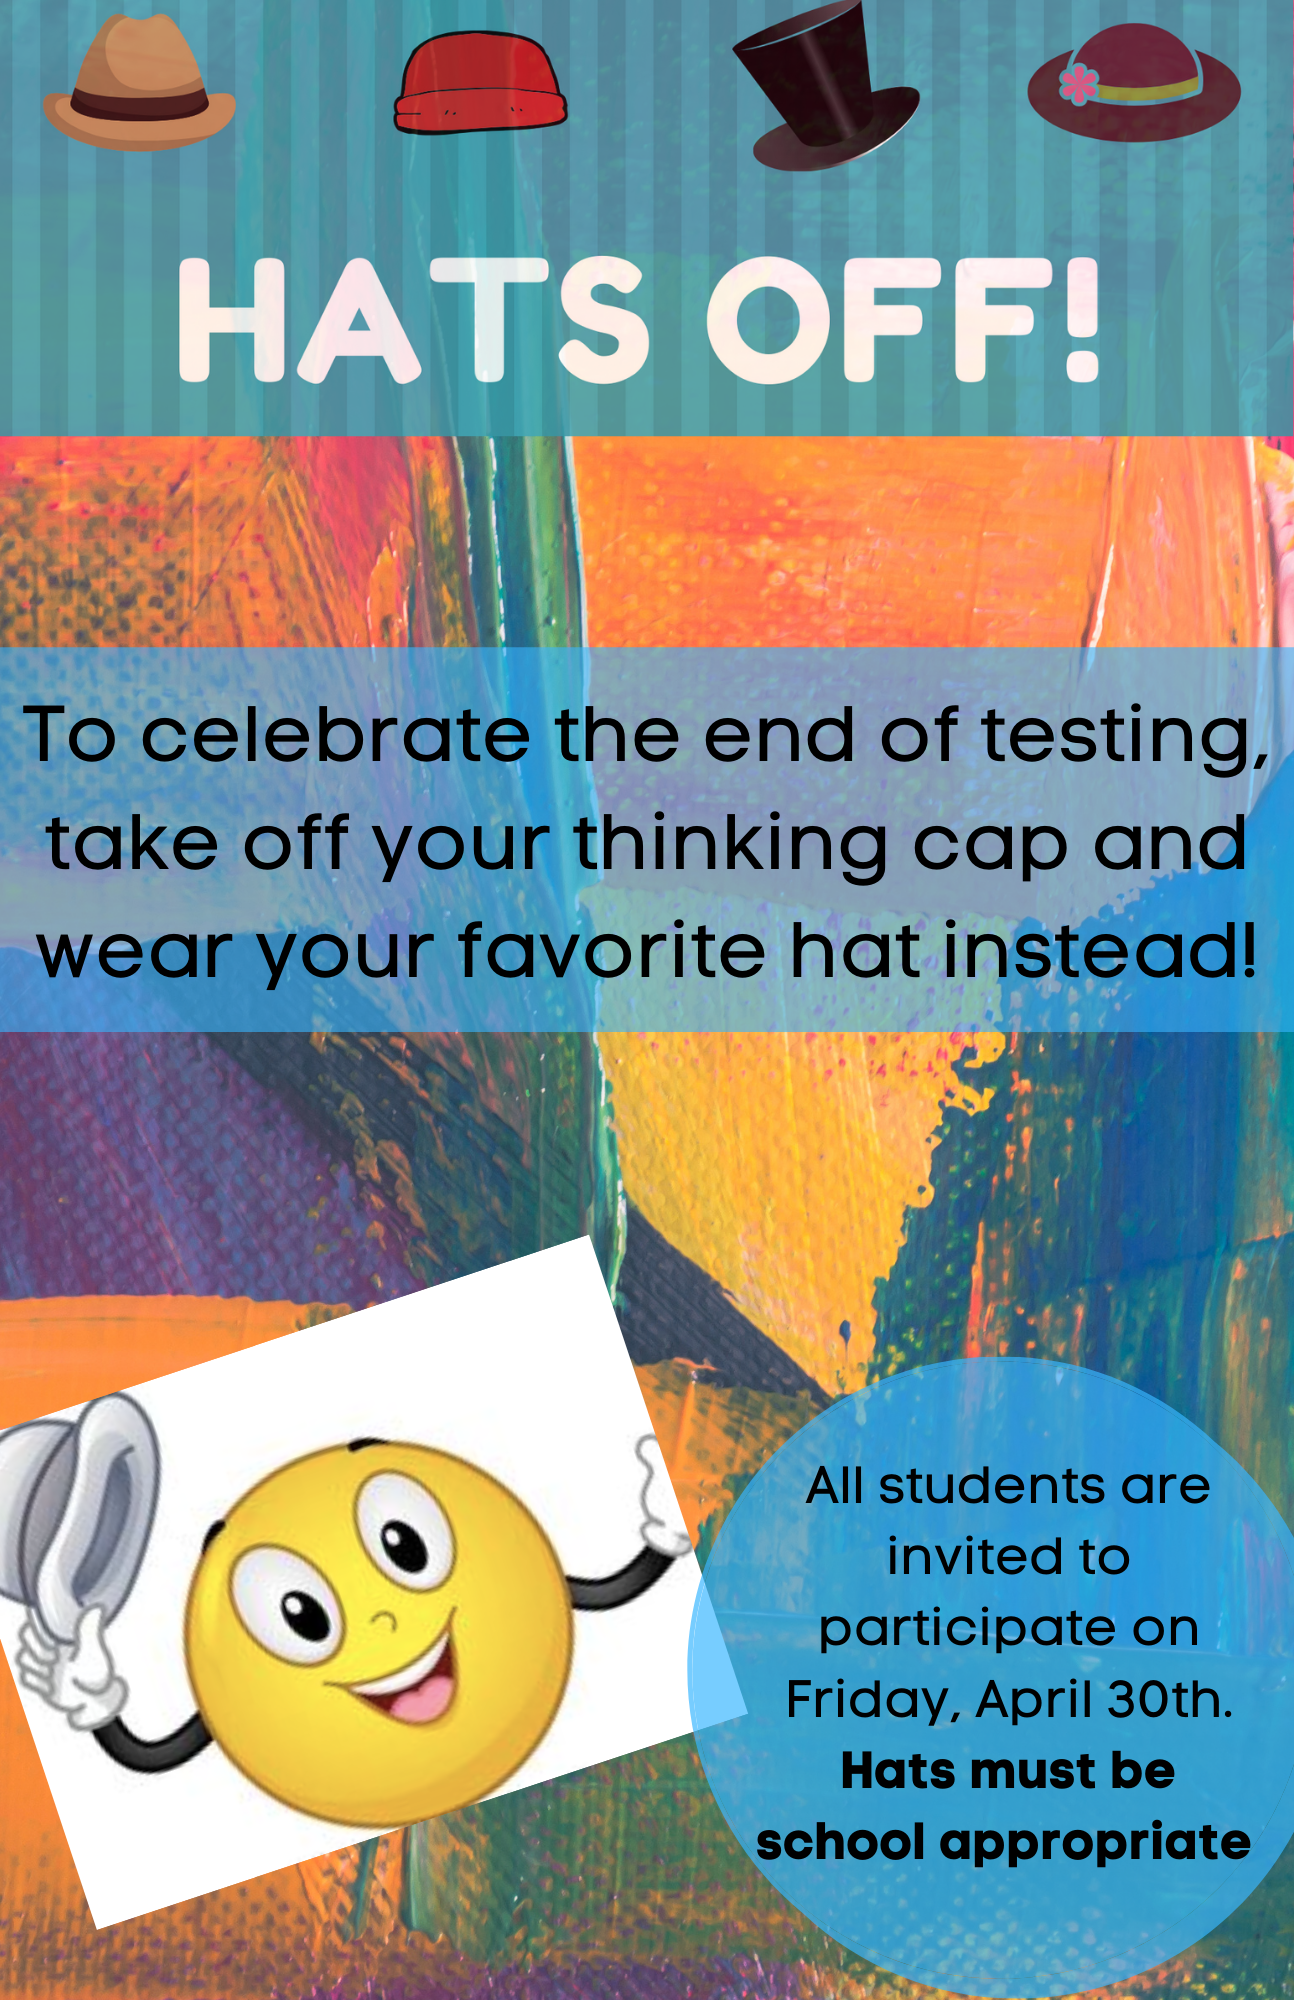 Hats Off to celebrate the end of testing